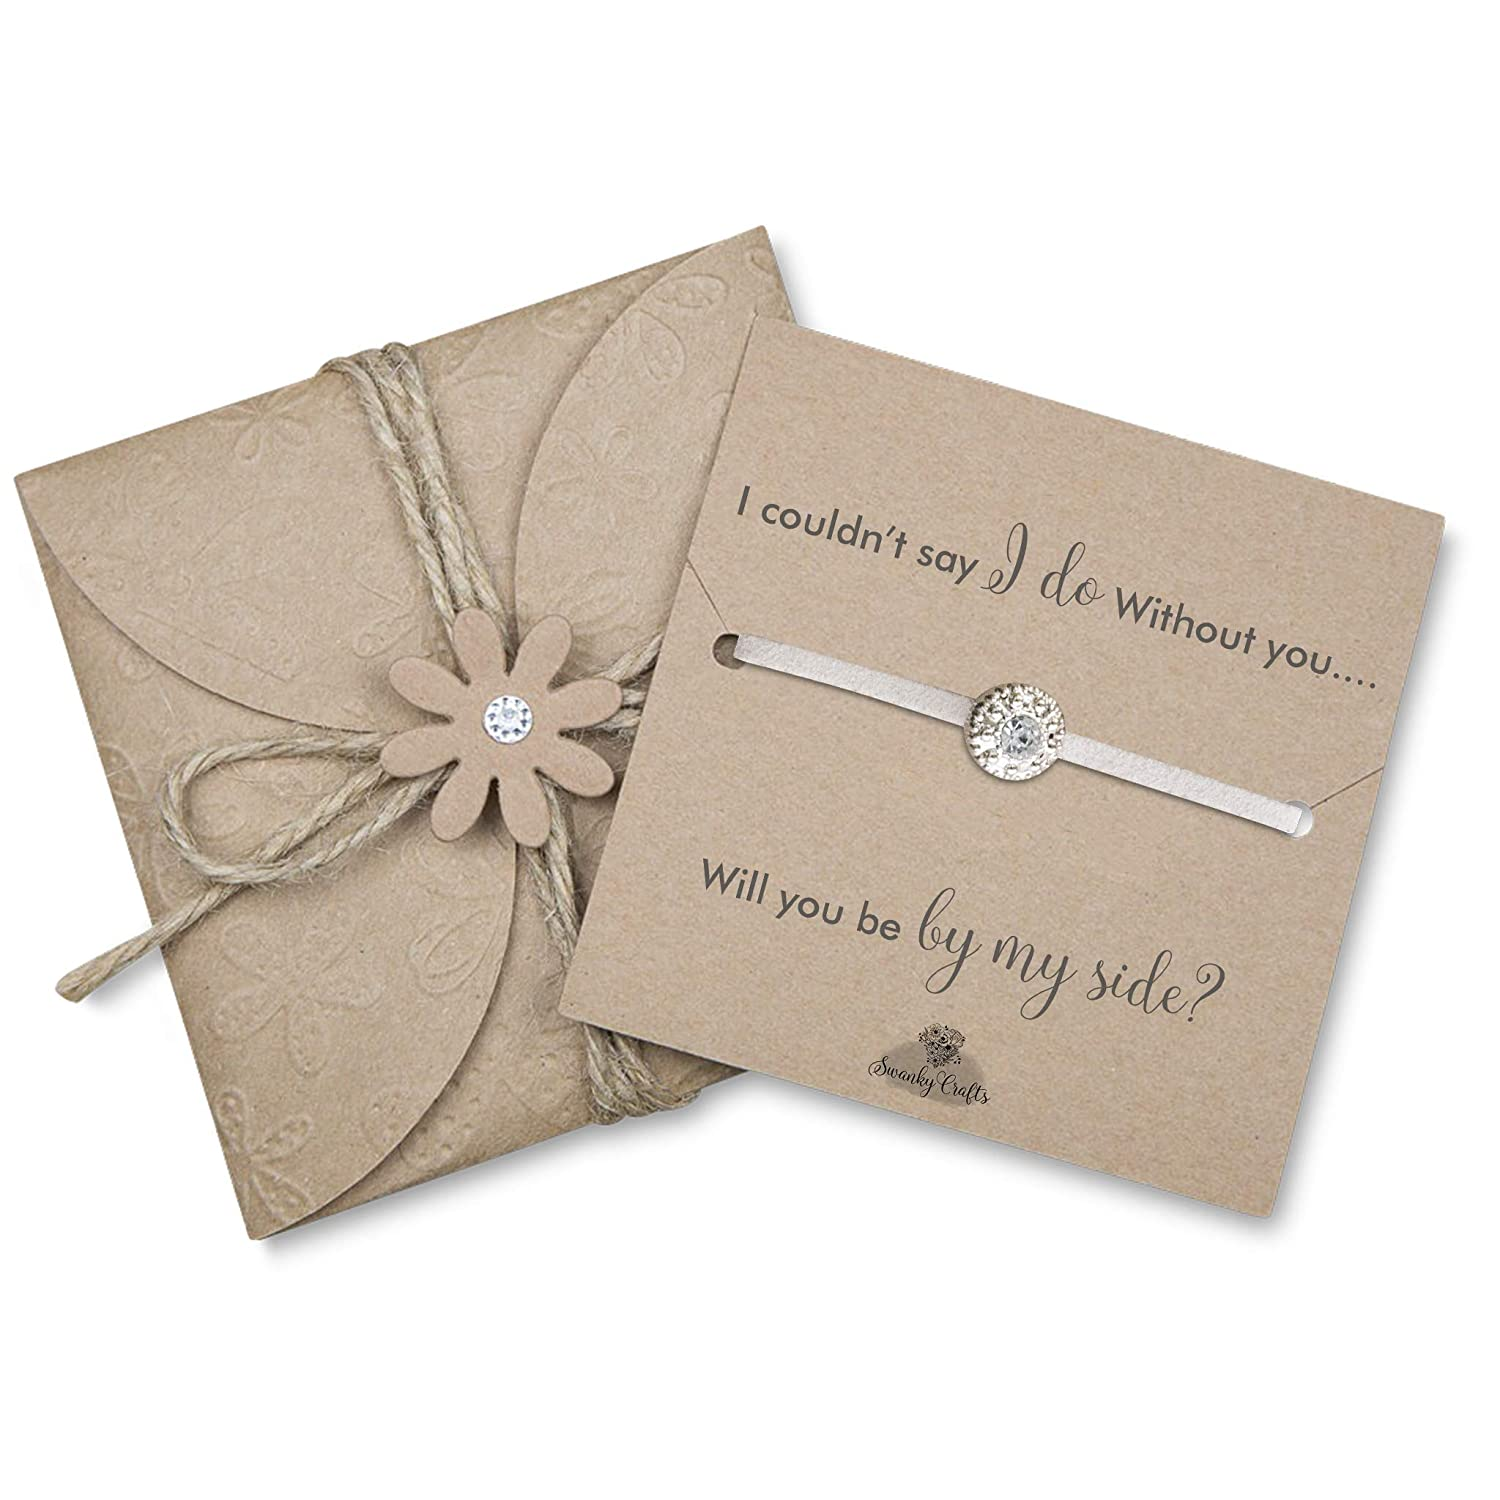 Amazon.com Asking bridesmaids gifts Will you be my bridesmaid bracelet junior bridesmaid gifts Ivory Handmade  sc 1 st  Amazon.com & Amazon.com: Asking bridesmaids gifts Will you be my bridesmaid ...